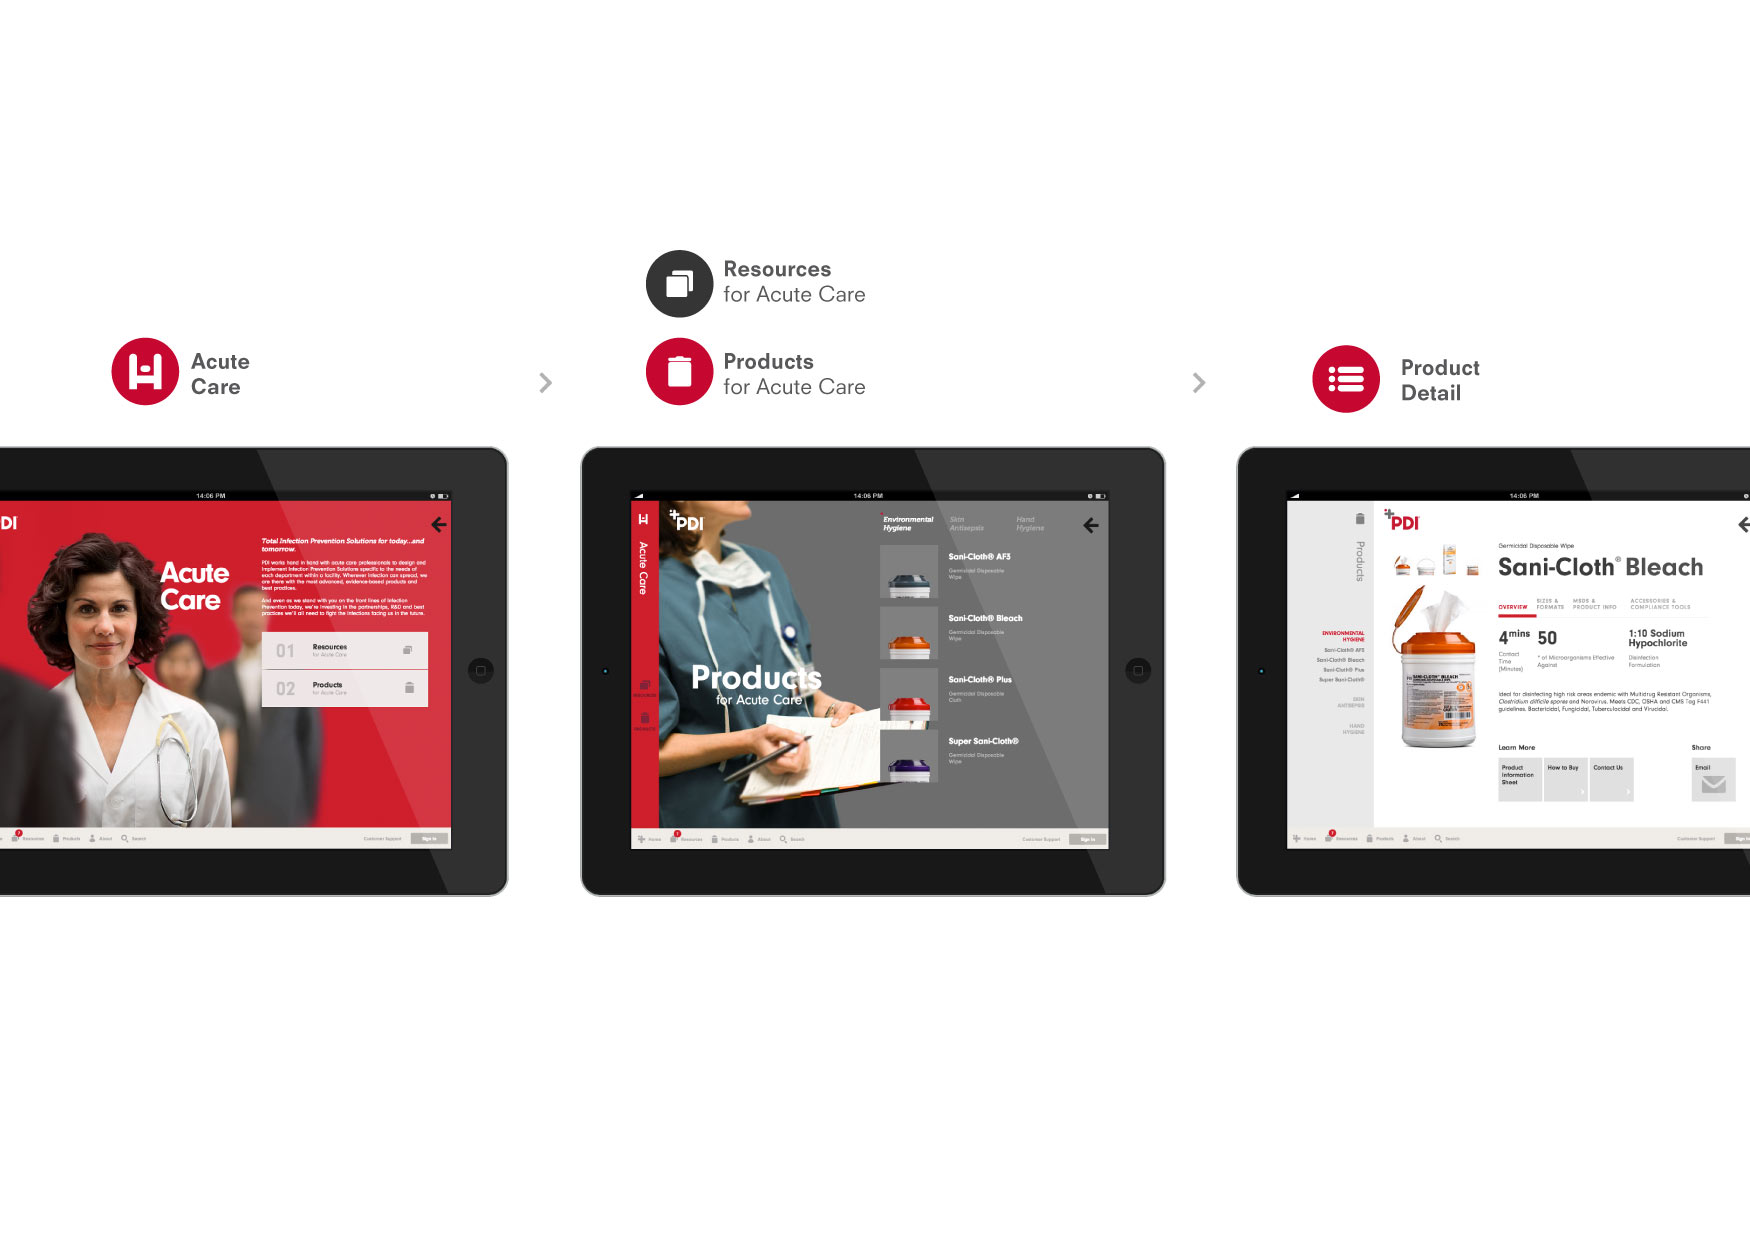 PDI - Tablet View